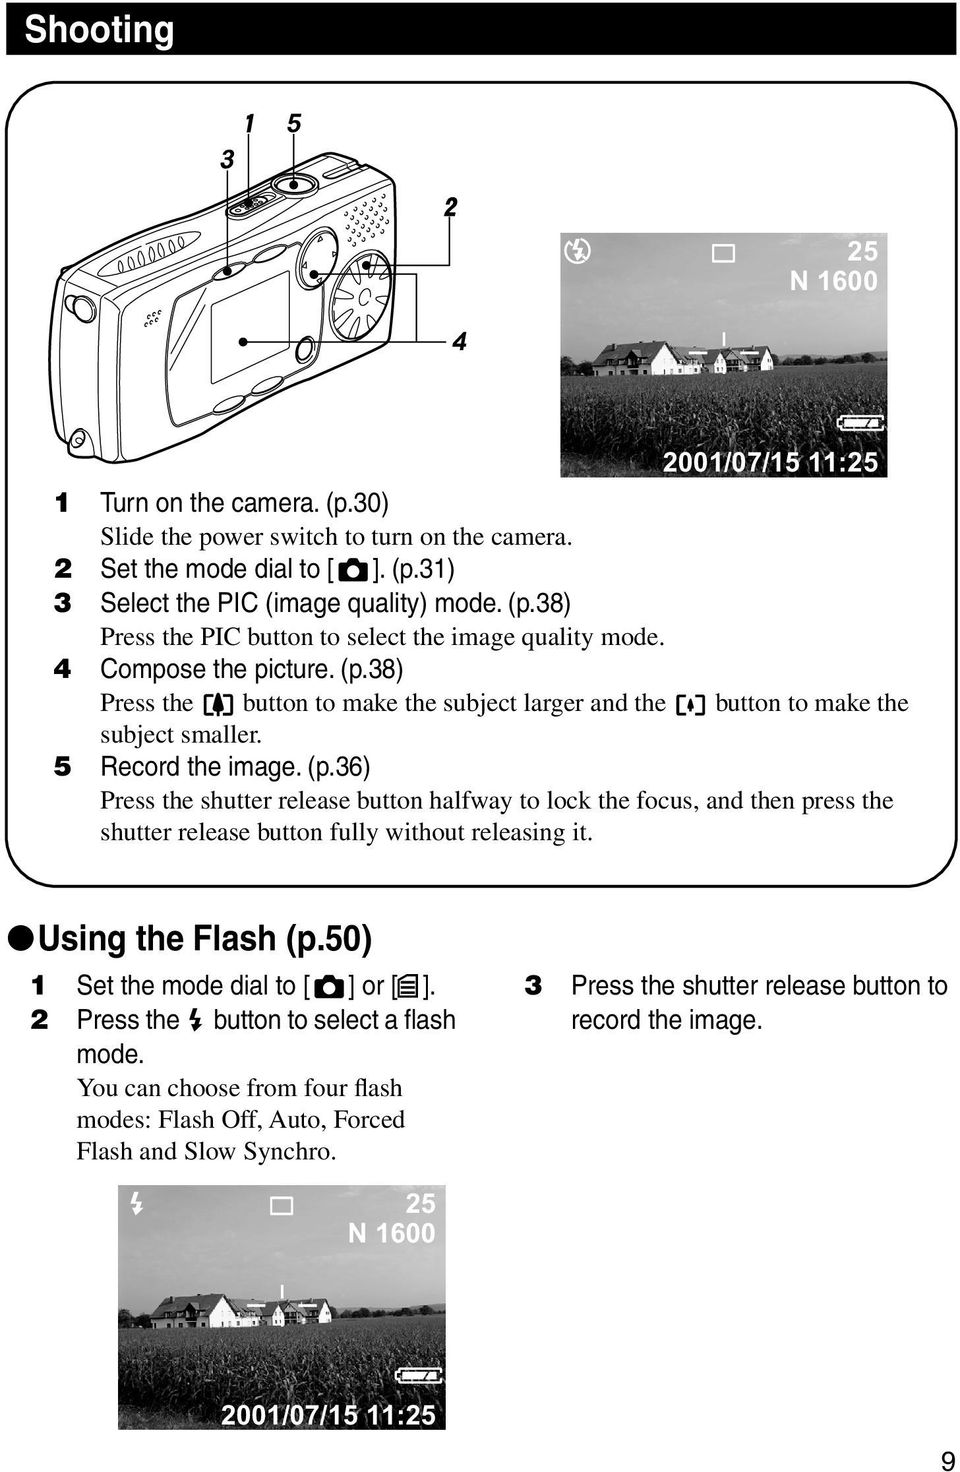 Using the Flash (p.50) 1 Set the mode dial to [ ] or [ ]. 2 Press the button to select a flash mode. You can choose from four flash modes: Flash Off, Auto, Forced Flash and Slow Synchro.